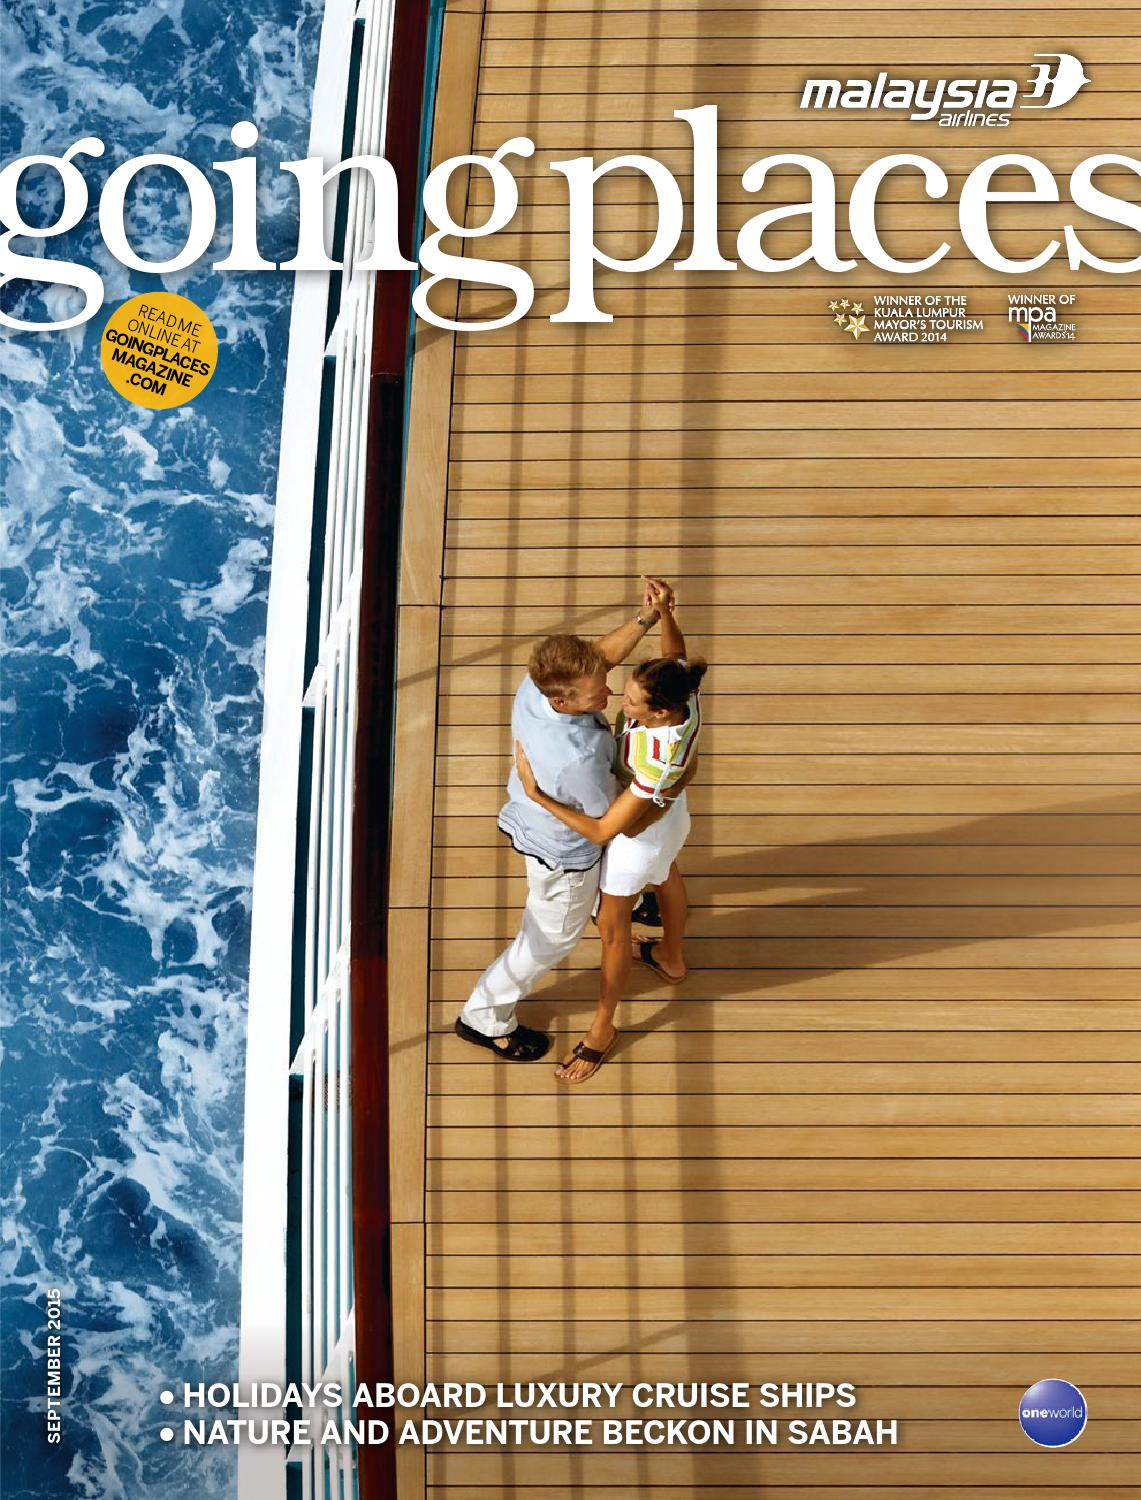 Going Places Sept 2015 By Spafax Malaysia Issuu Andrew Smith Bermuda Shorts Kuning 31